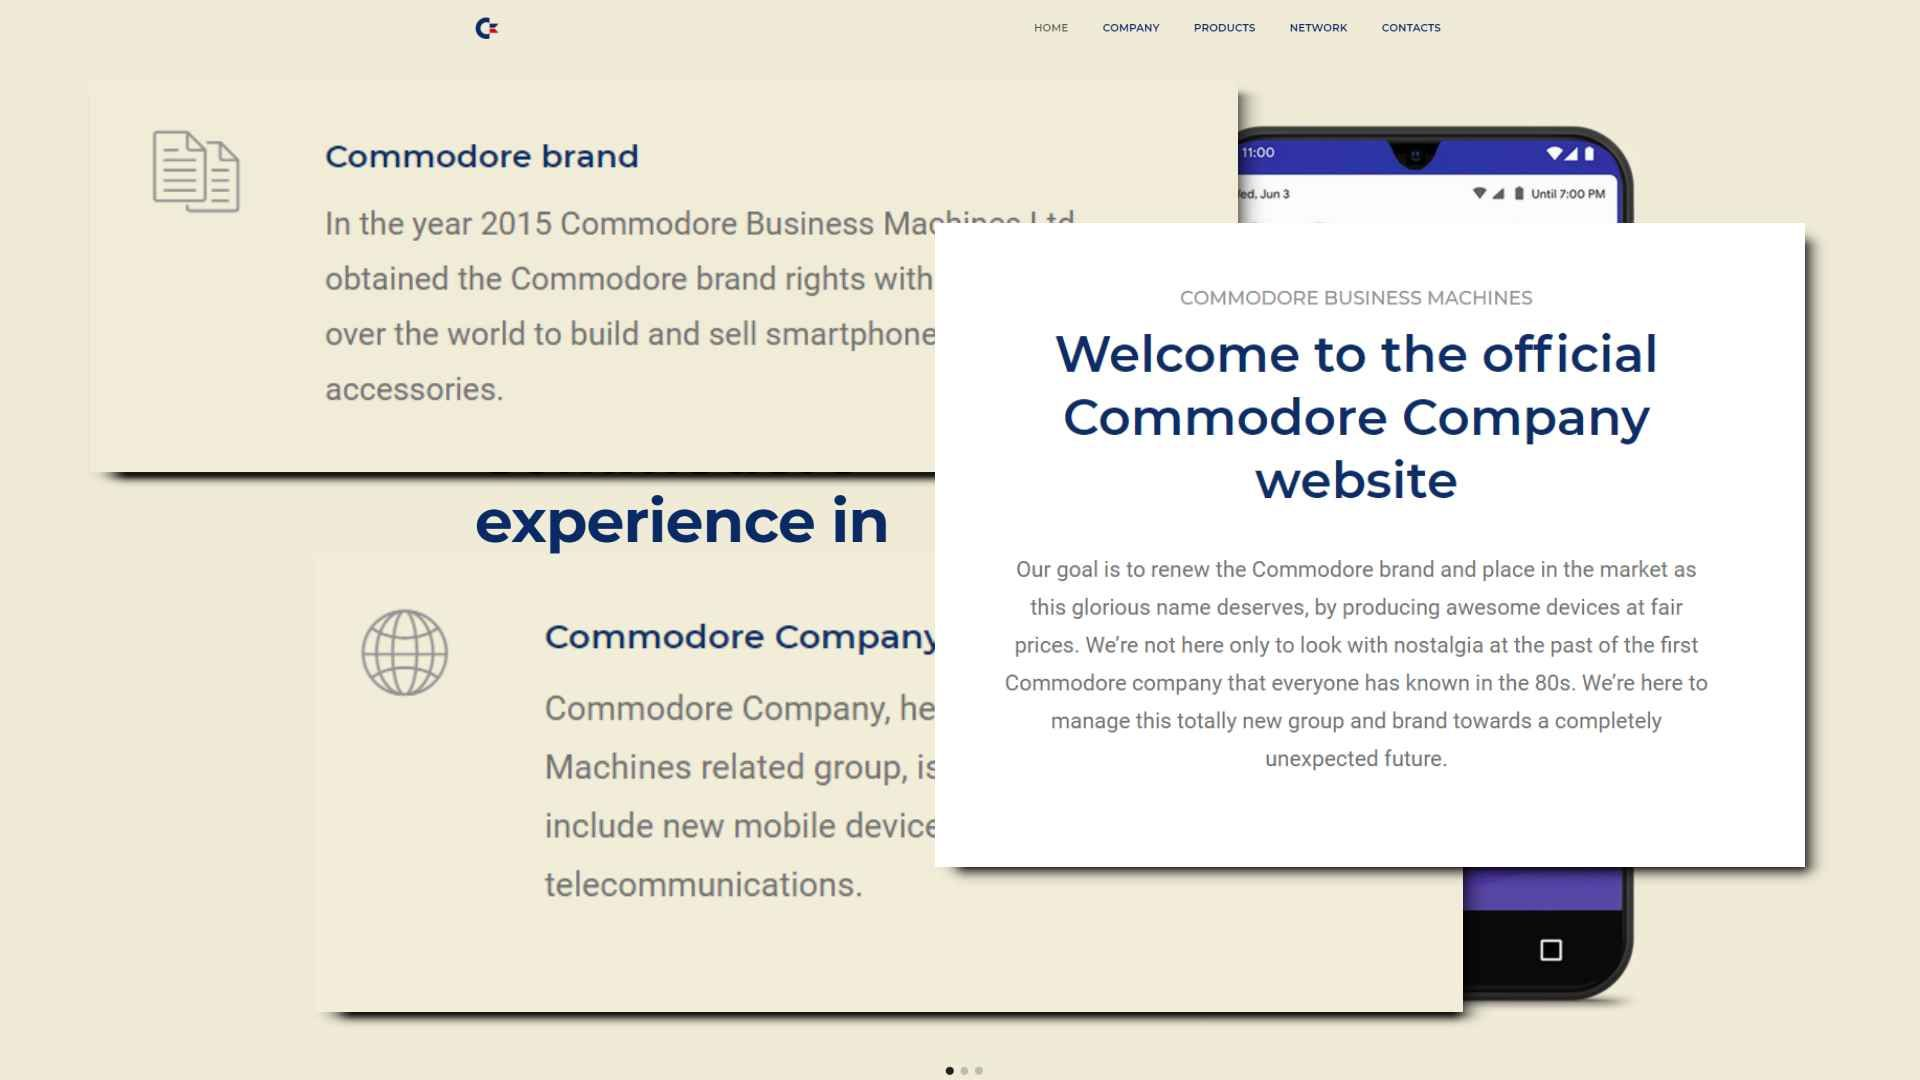 Excerpts from Commodore Business Machine's website